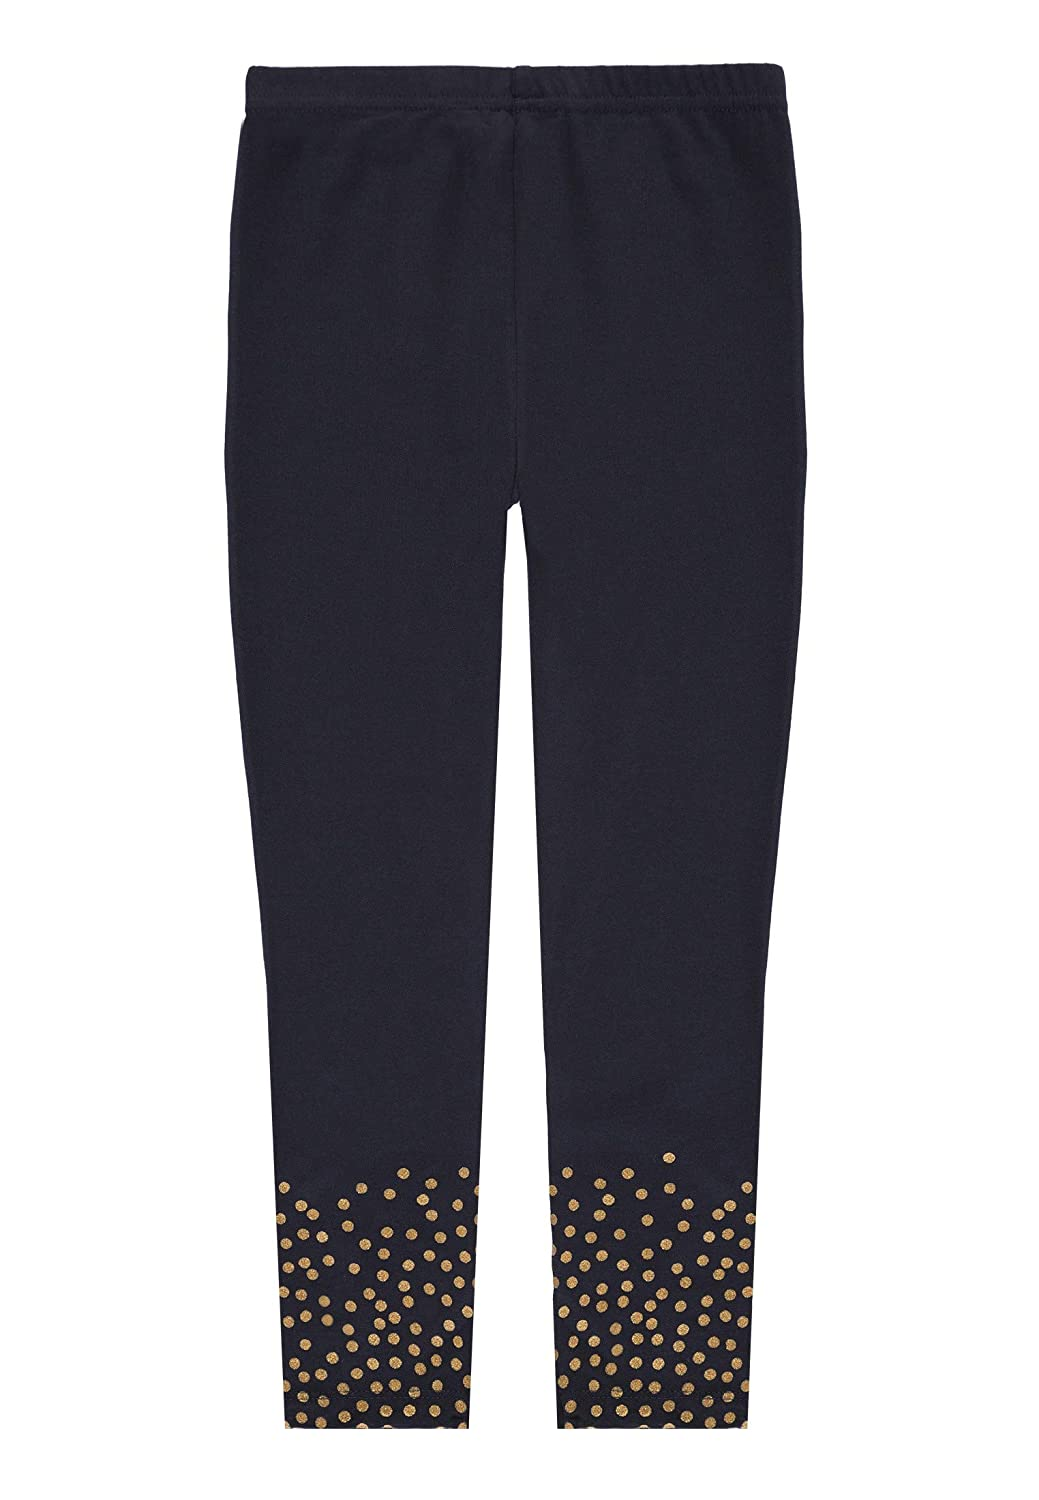 Tom Tailor Leggings Placed Print Bambina